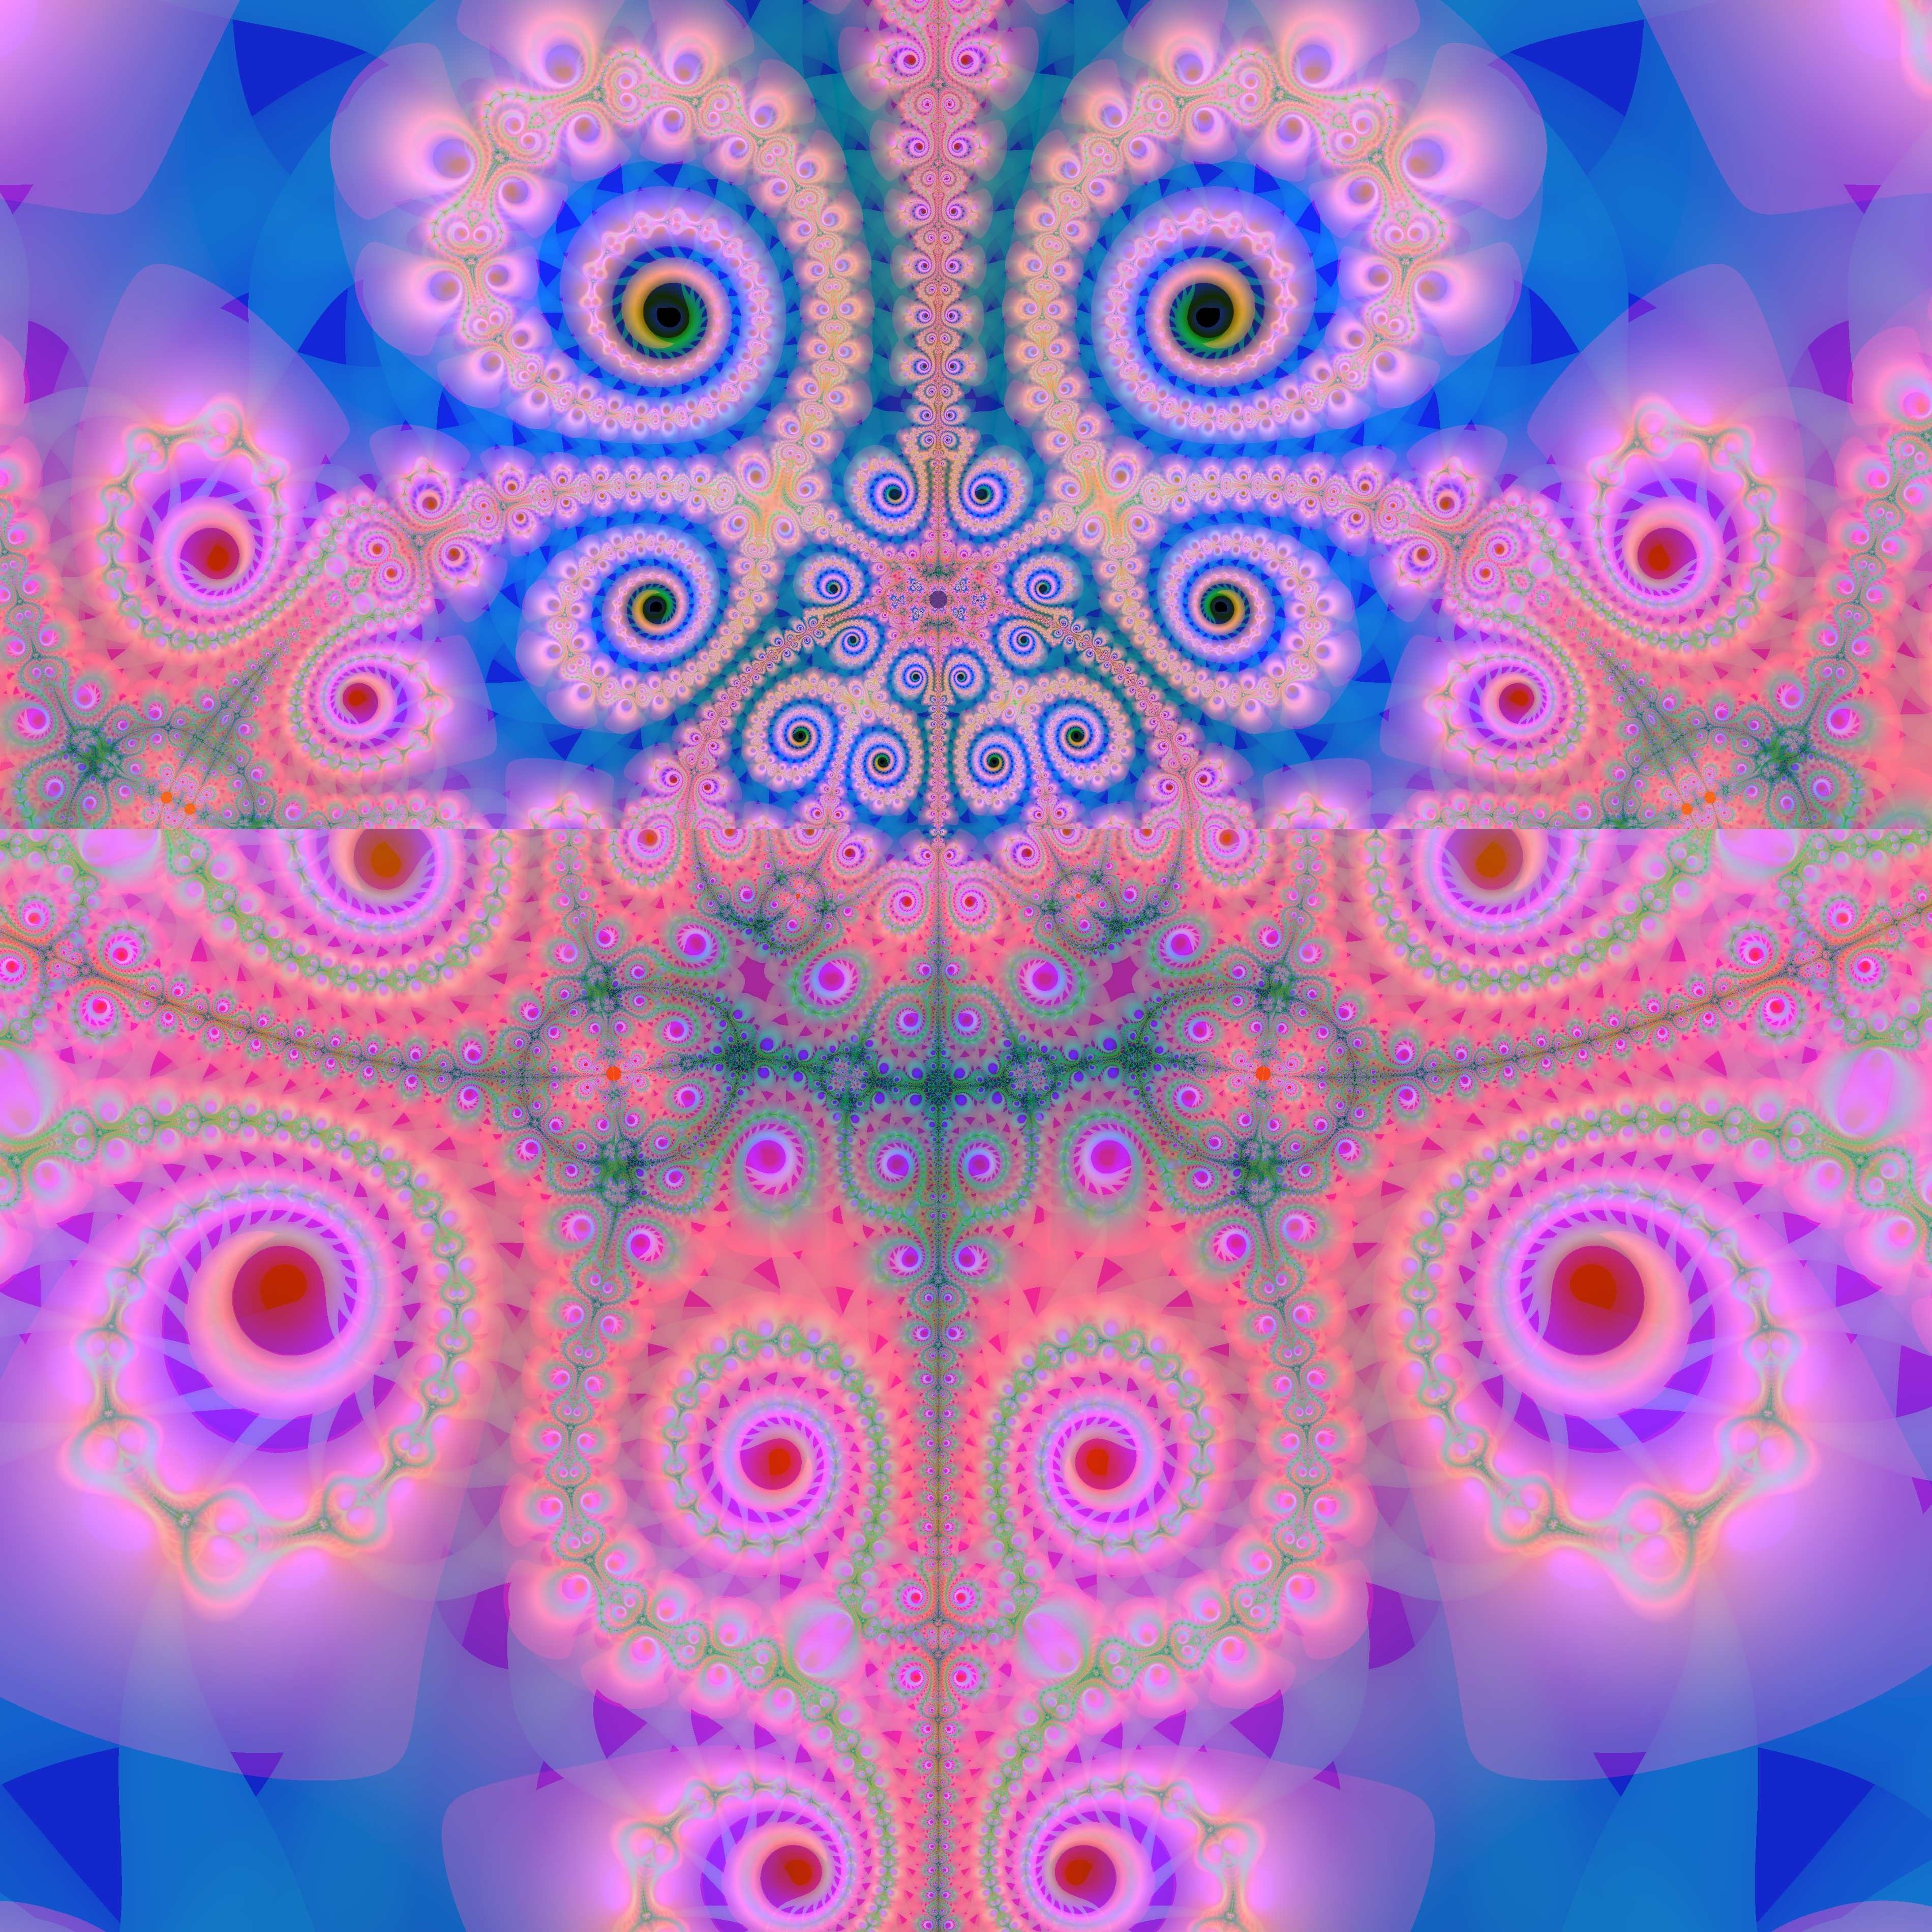 a pink and blue repeating fractal patern with a central reflection and spiral design